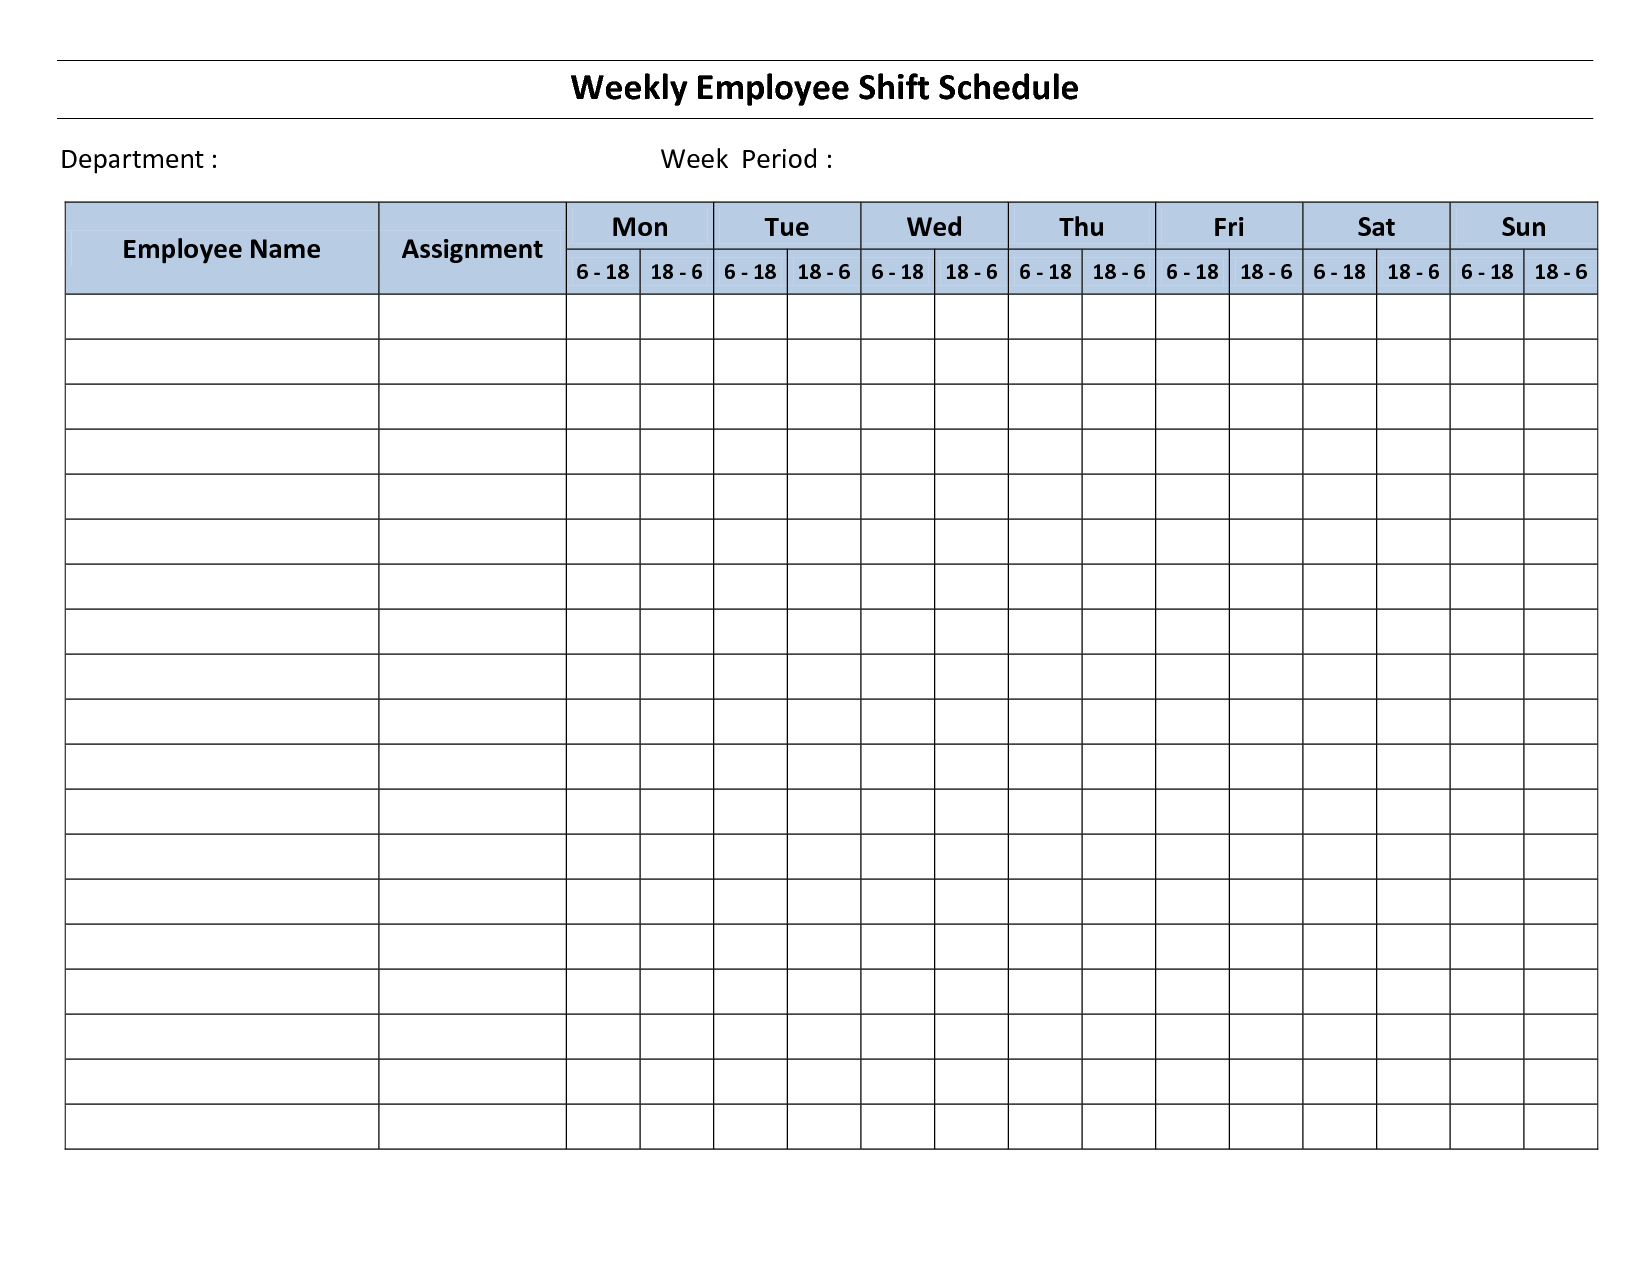 Agenda Meeting Template Word Best Printable Weekly Employee Schedule Template  Wyldewood Op .